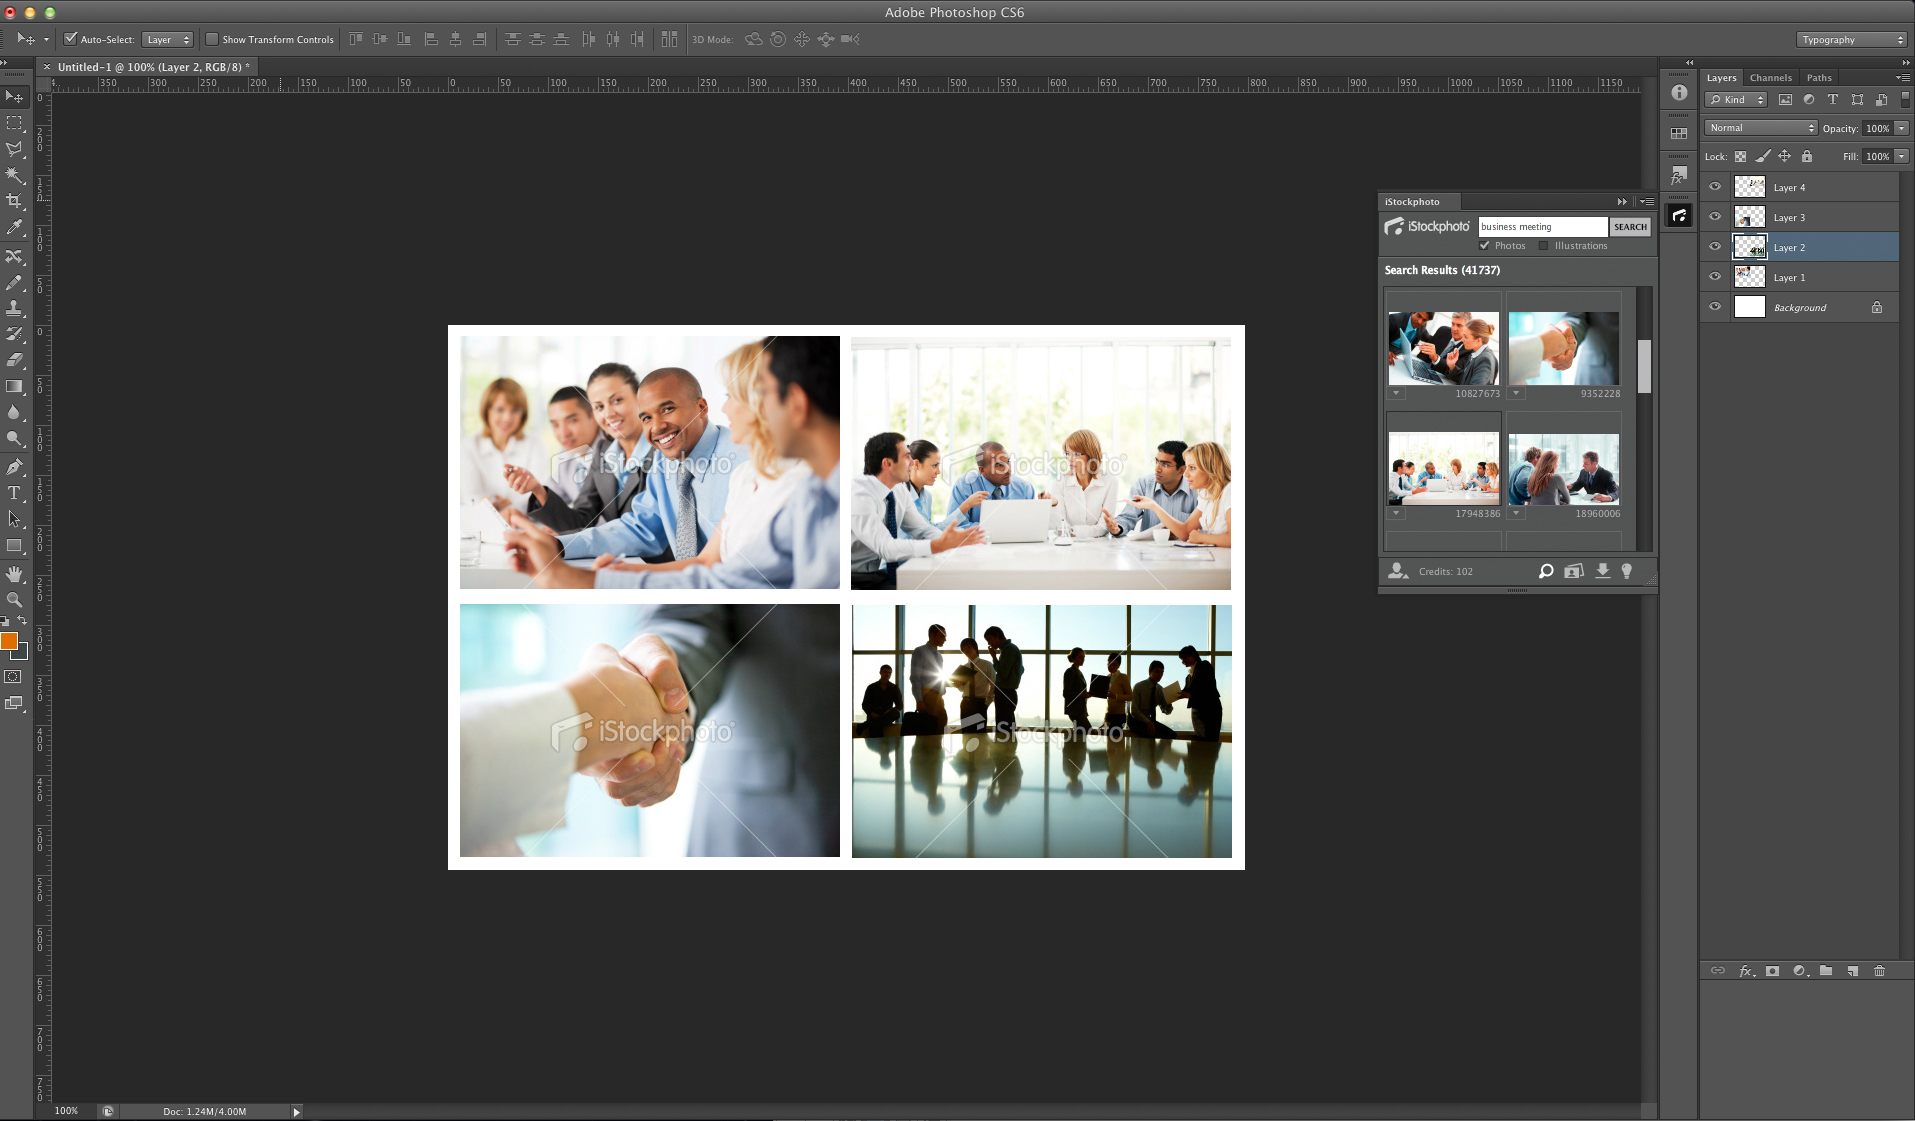 iStockphoto Adobe PlugIn search